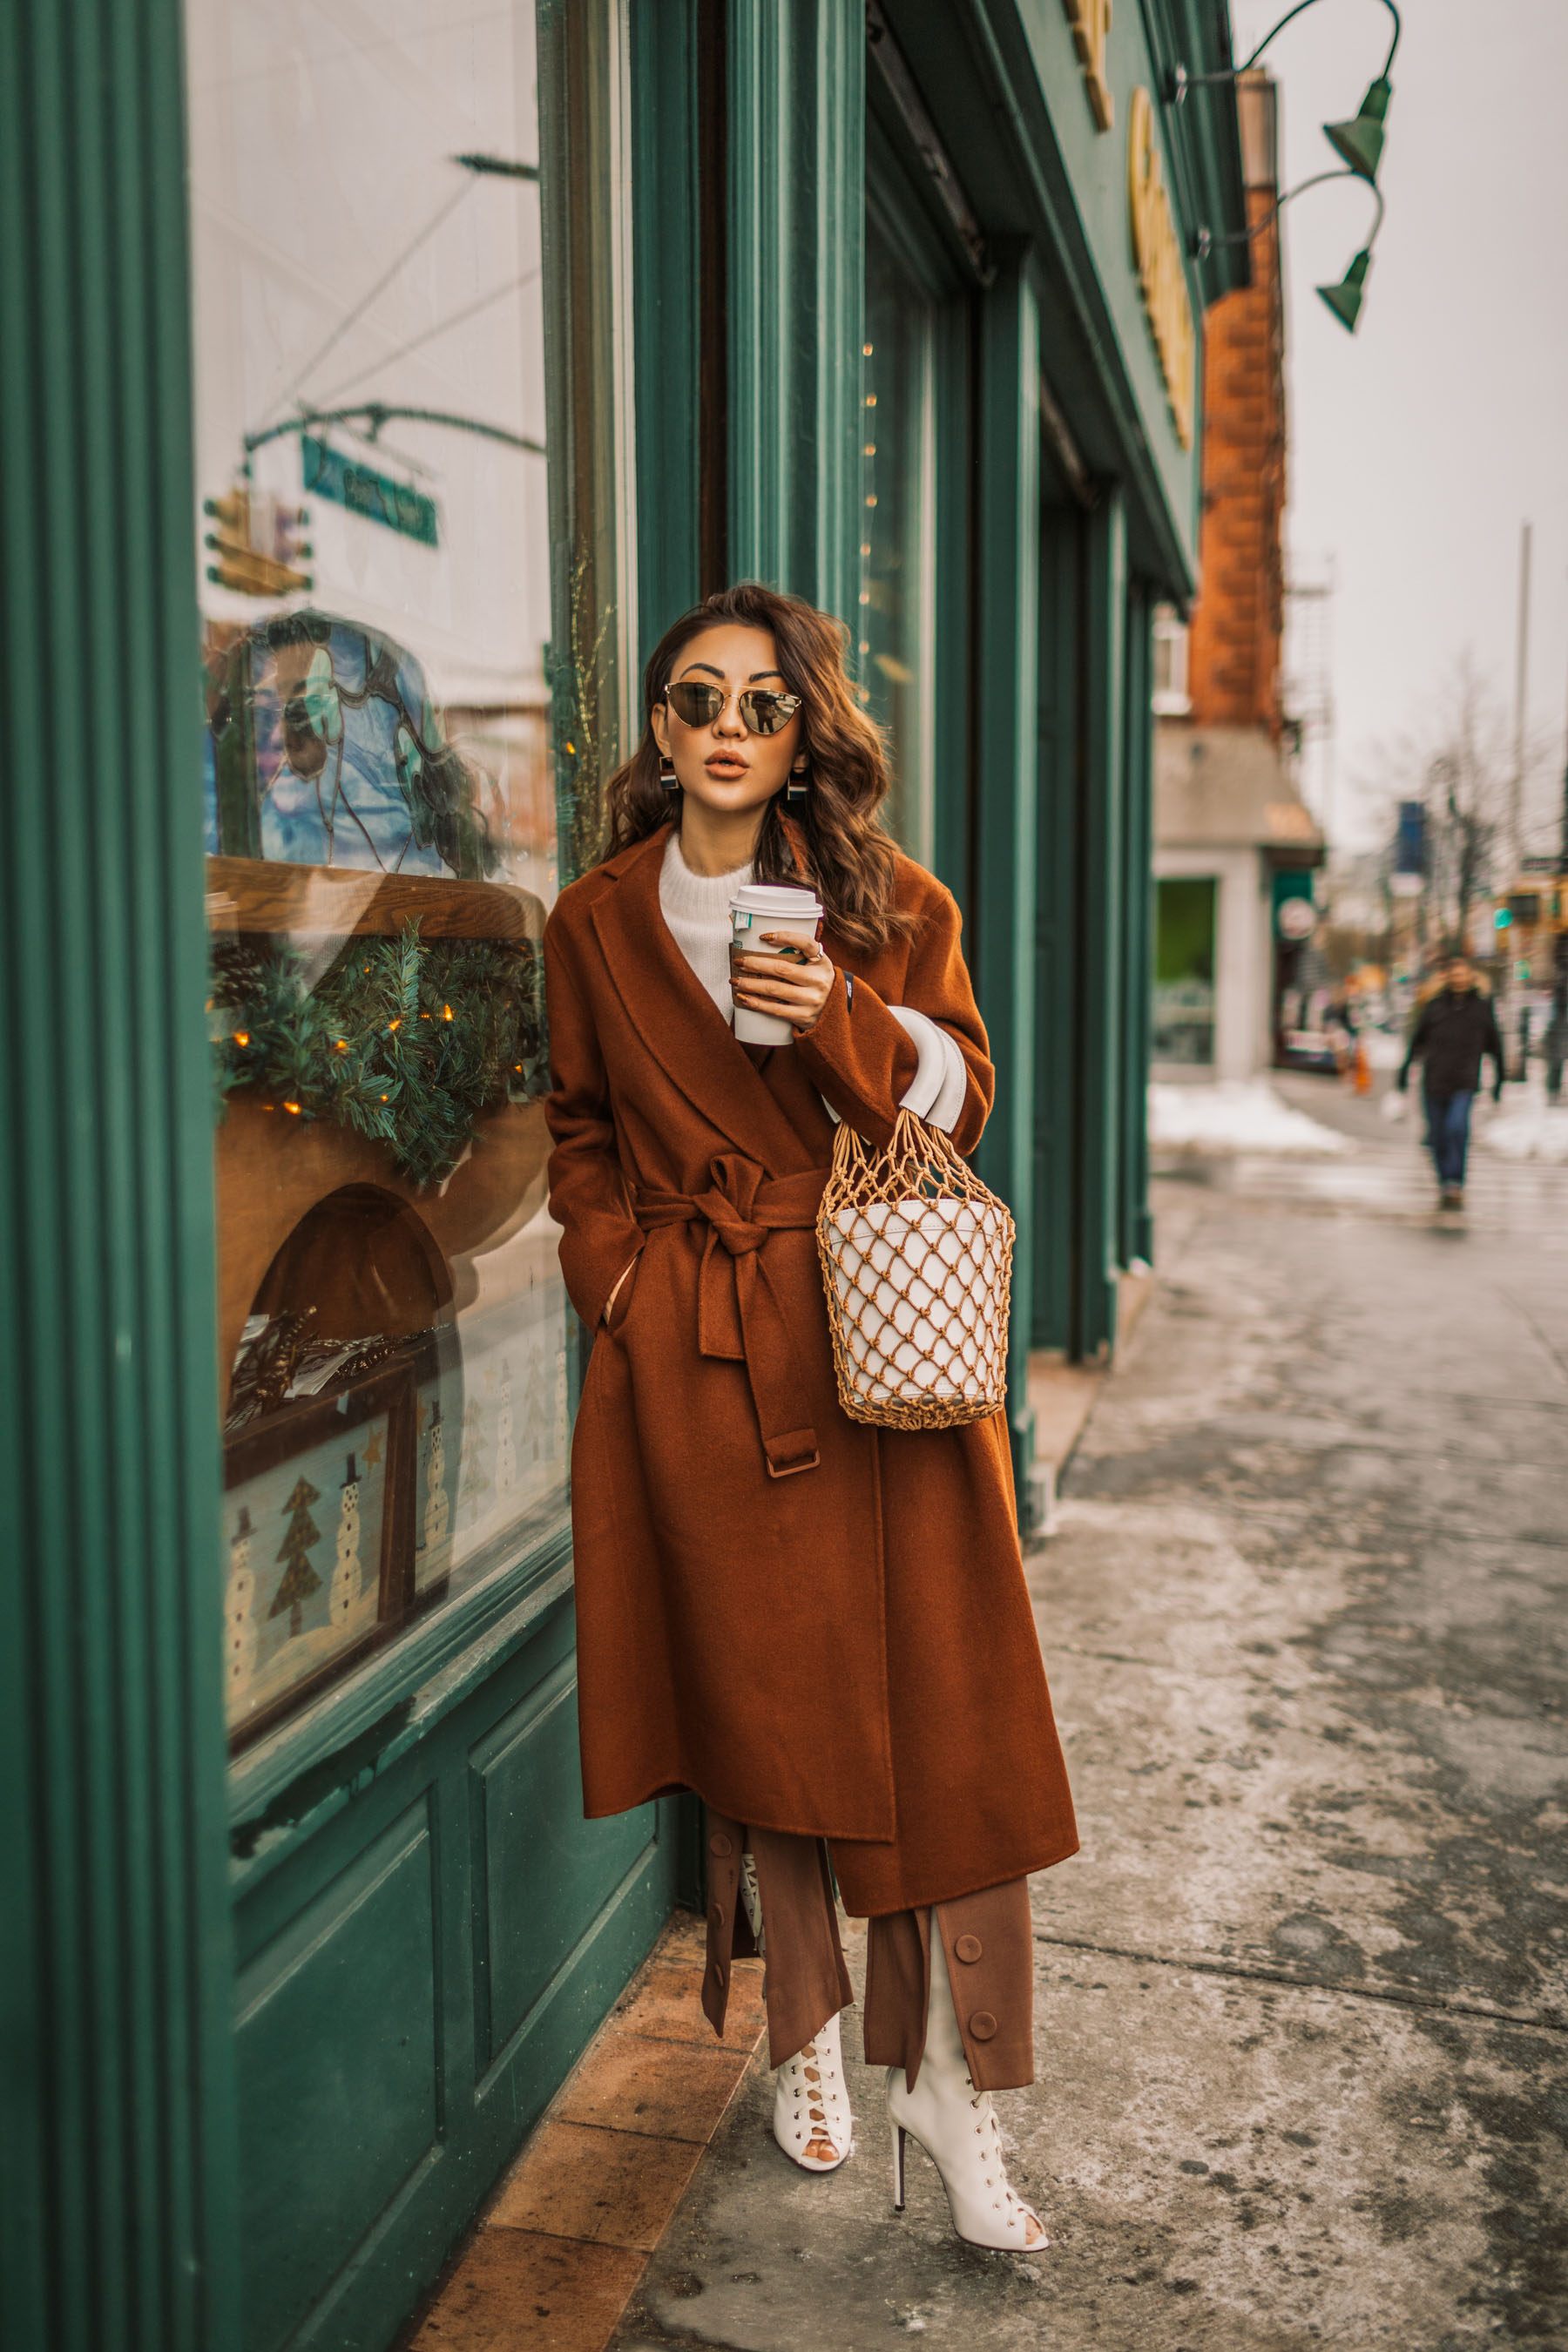 Up and Coming Handbag Brands to Know in 2018 // Notjessfashion.com // staud macrame bag, brown button trousers, wrap coat, robe coat, chic winter outfit, new york fashion blogger, aviator sunglasses